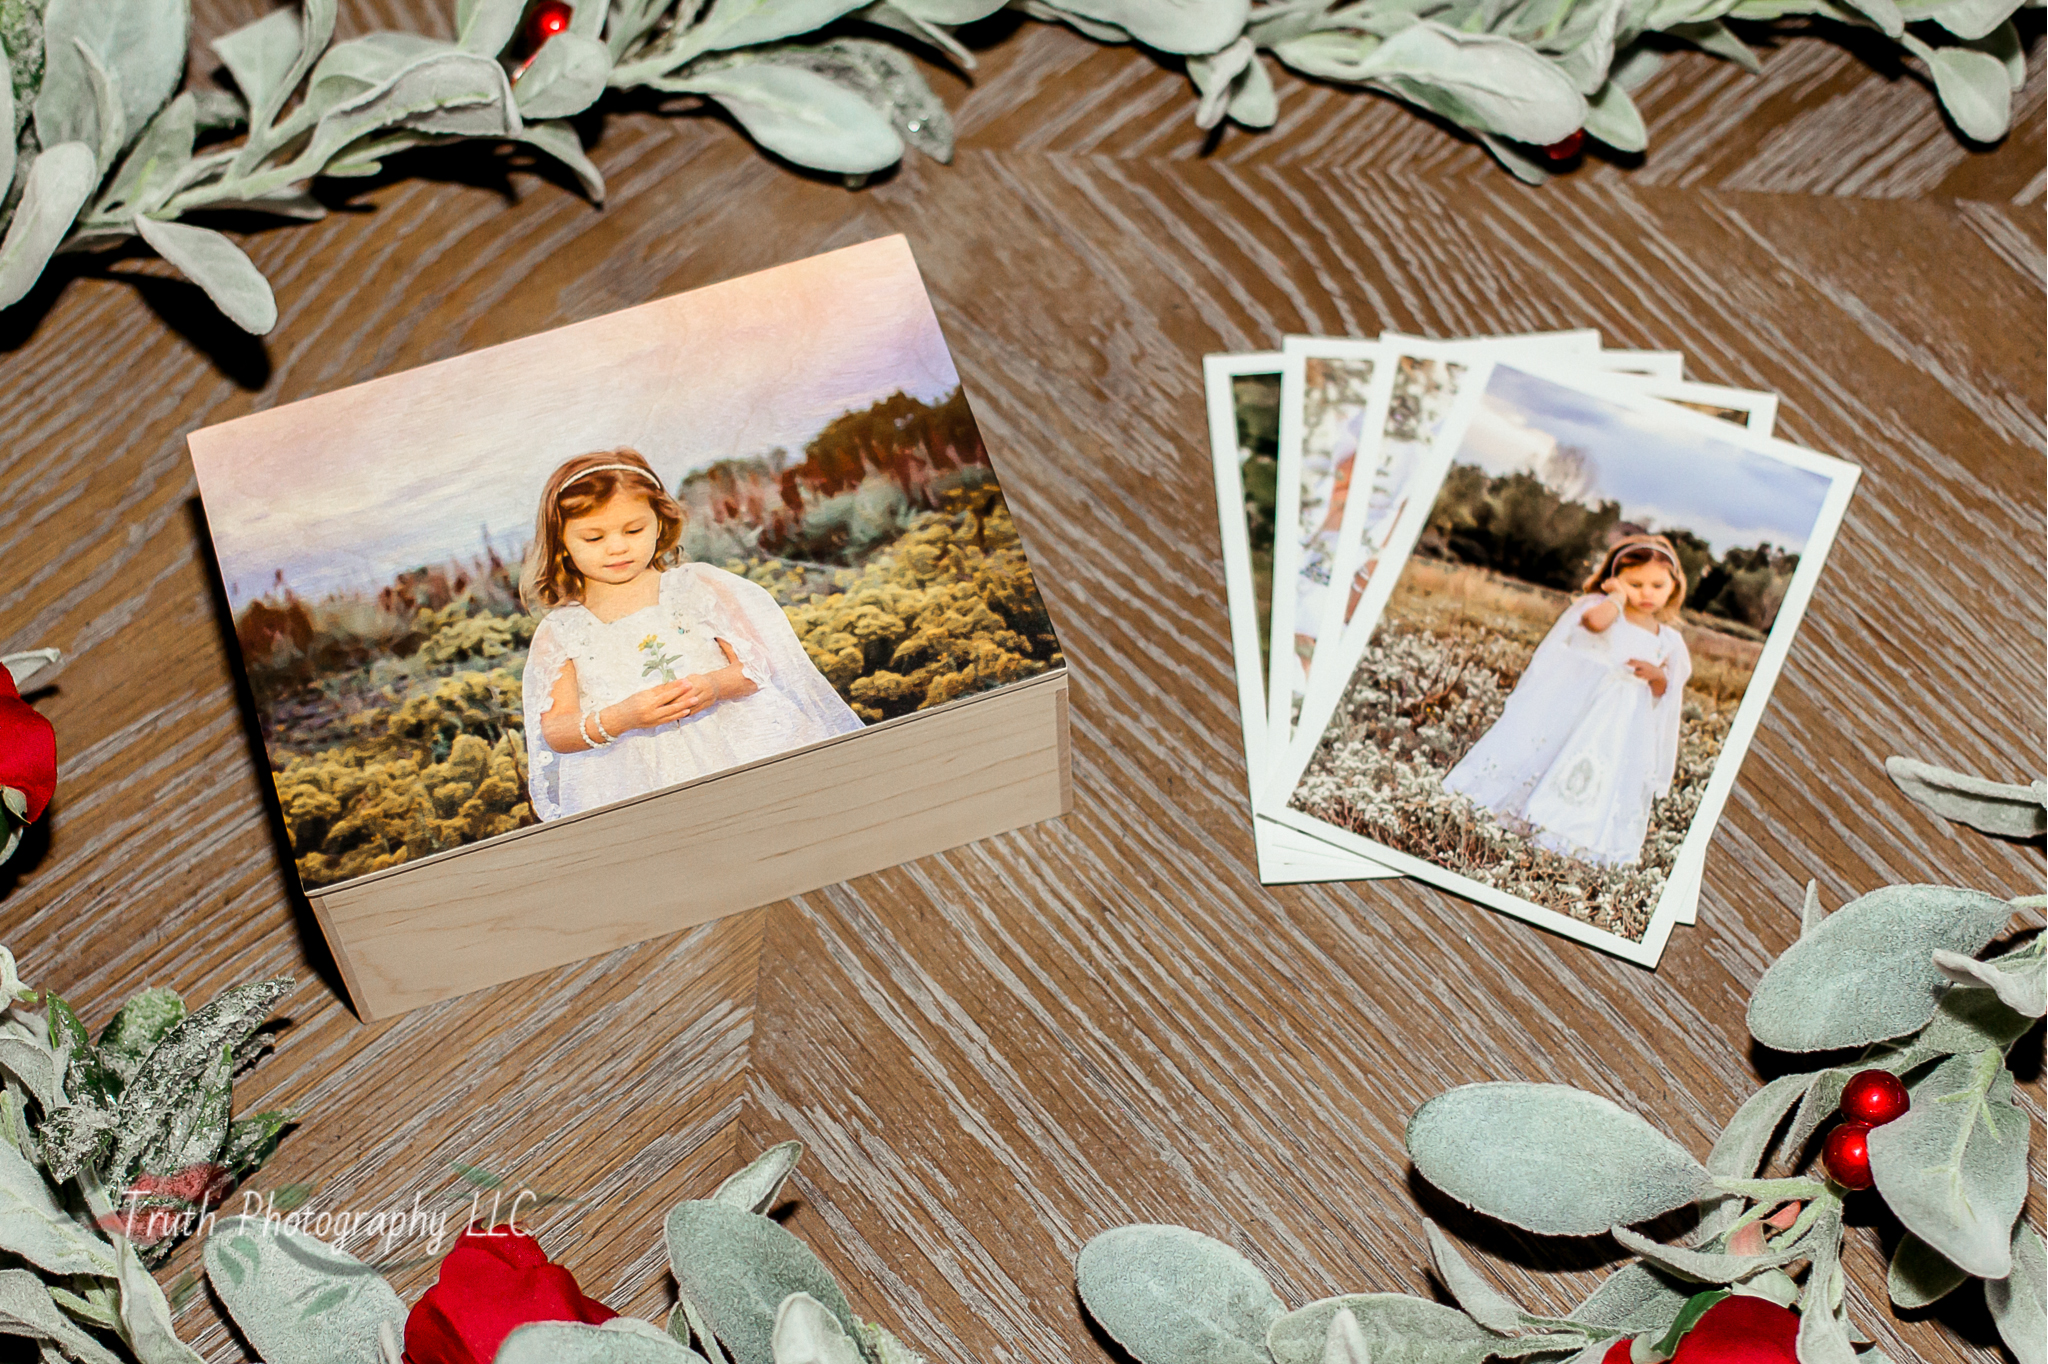 #4 Wood Keepsake box - The wood keepsake box is another great option for the mom who is running out of wall space. The keepsake box comes with 30 images however it can hold up to 350 loose 4x6 prints so she can add her own favorites or order a set from future photo shoots!